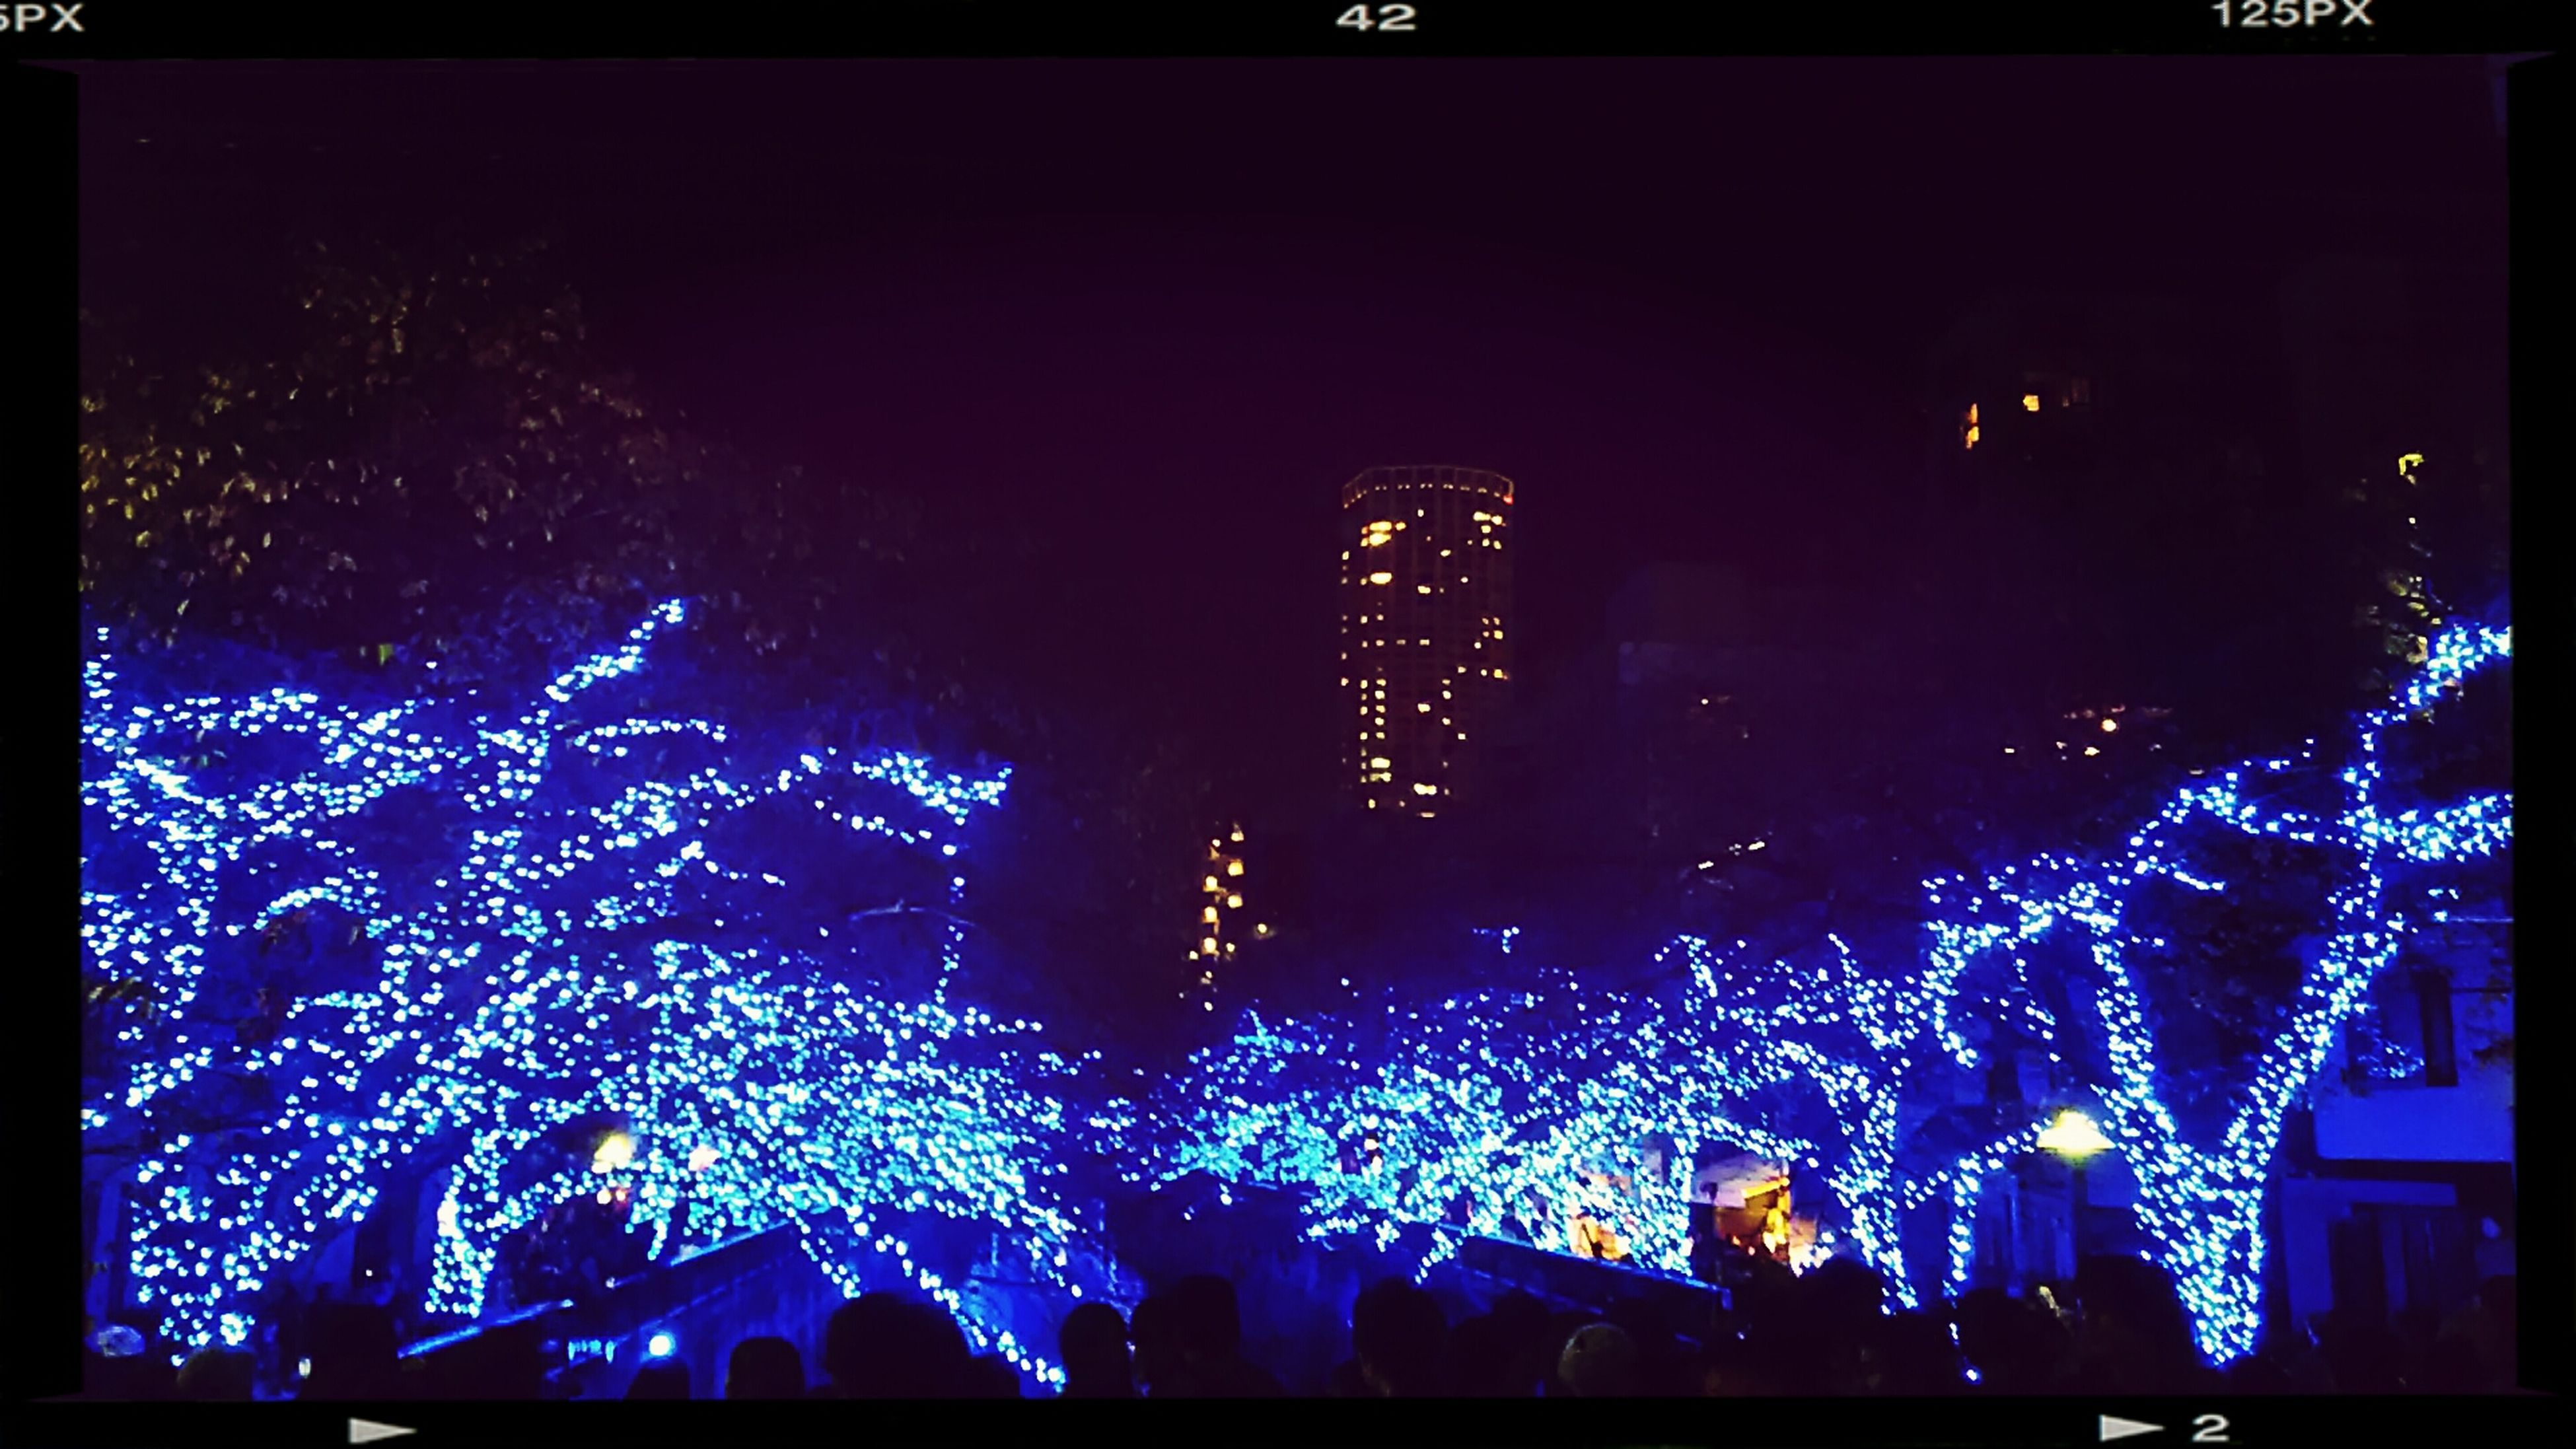 illuminated, night, large group of people, arts culture and entertainment, crowd, built structure, city, building exterior, event, celebration, architecture, lighting equipment, light - natural phenomenon, enjoyment, nightlife, leisure activity, city life, transfer print, sky